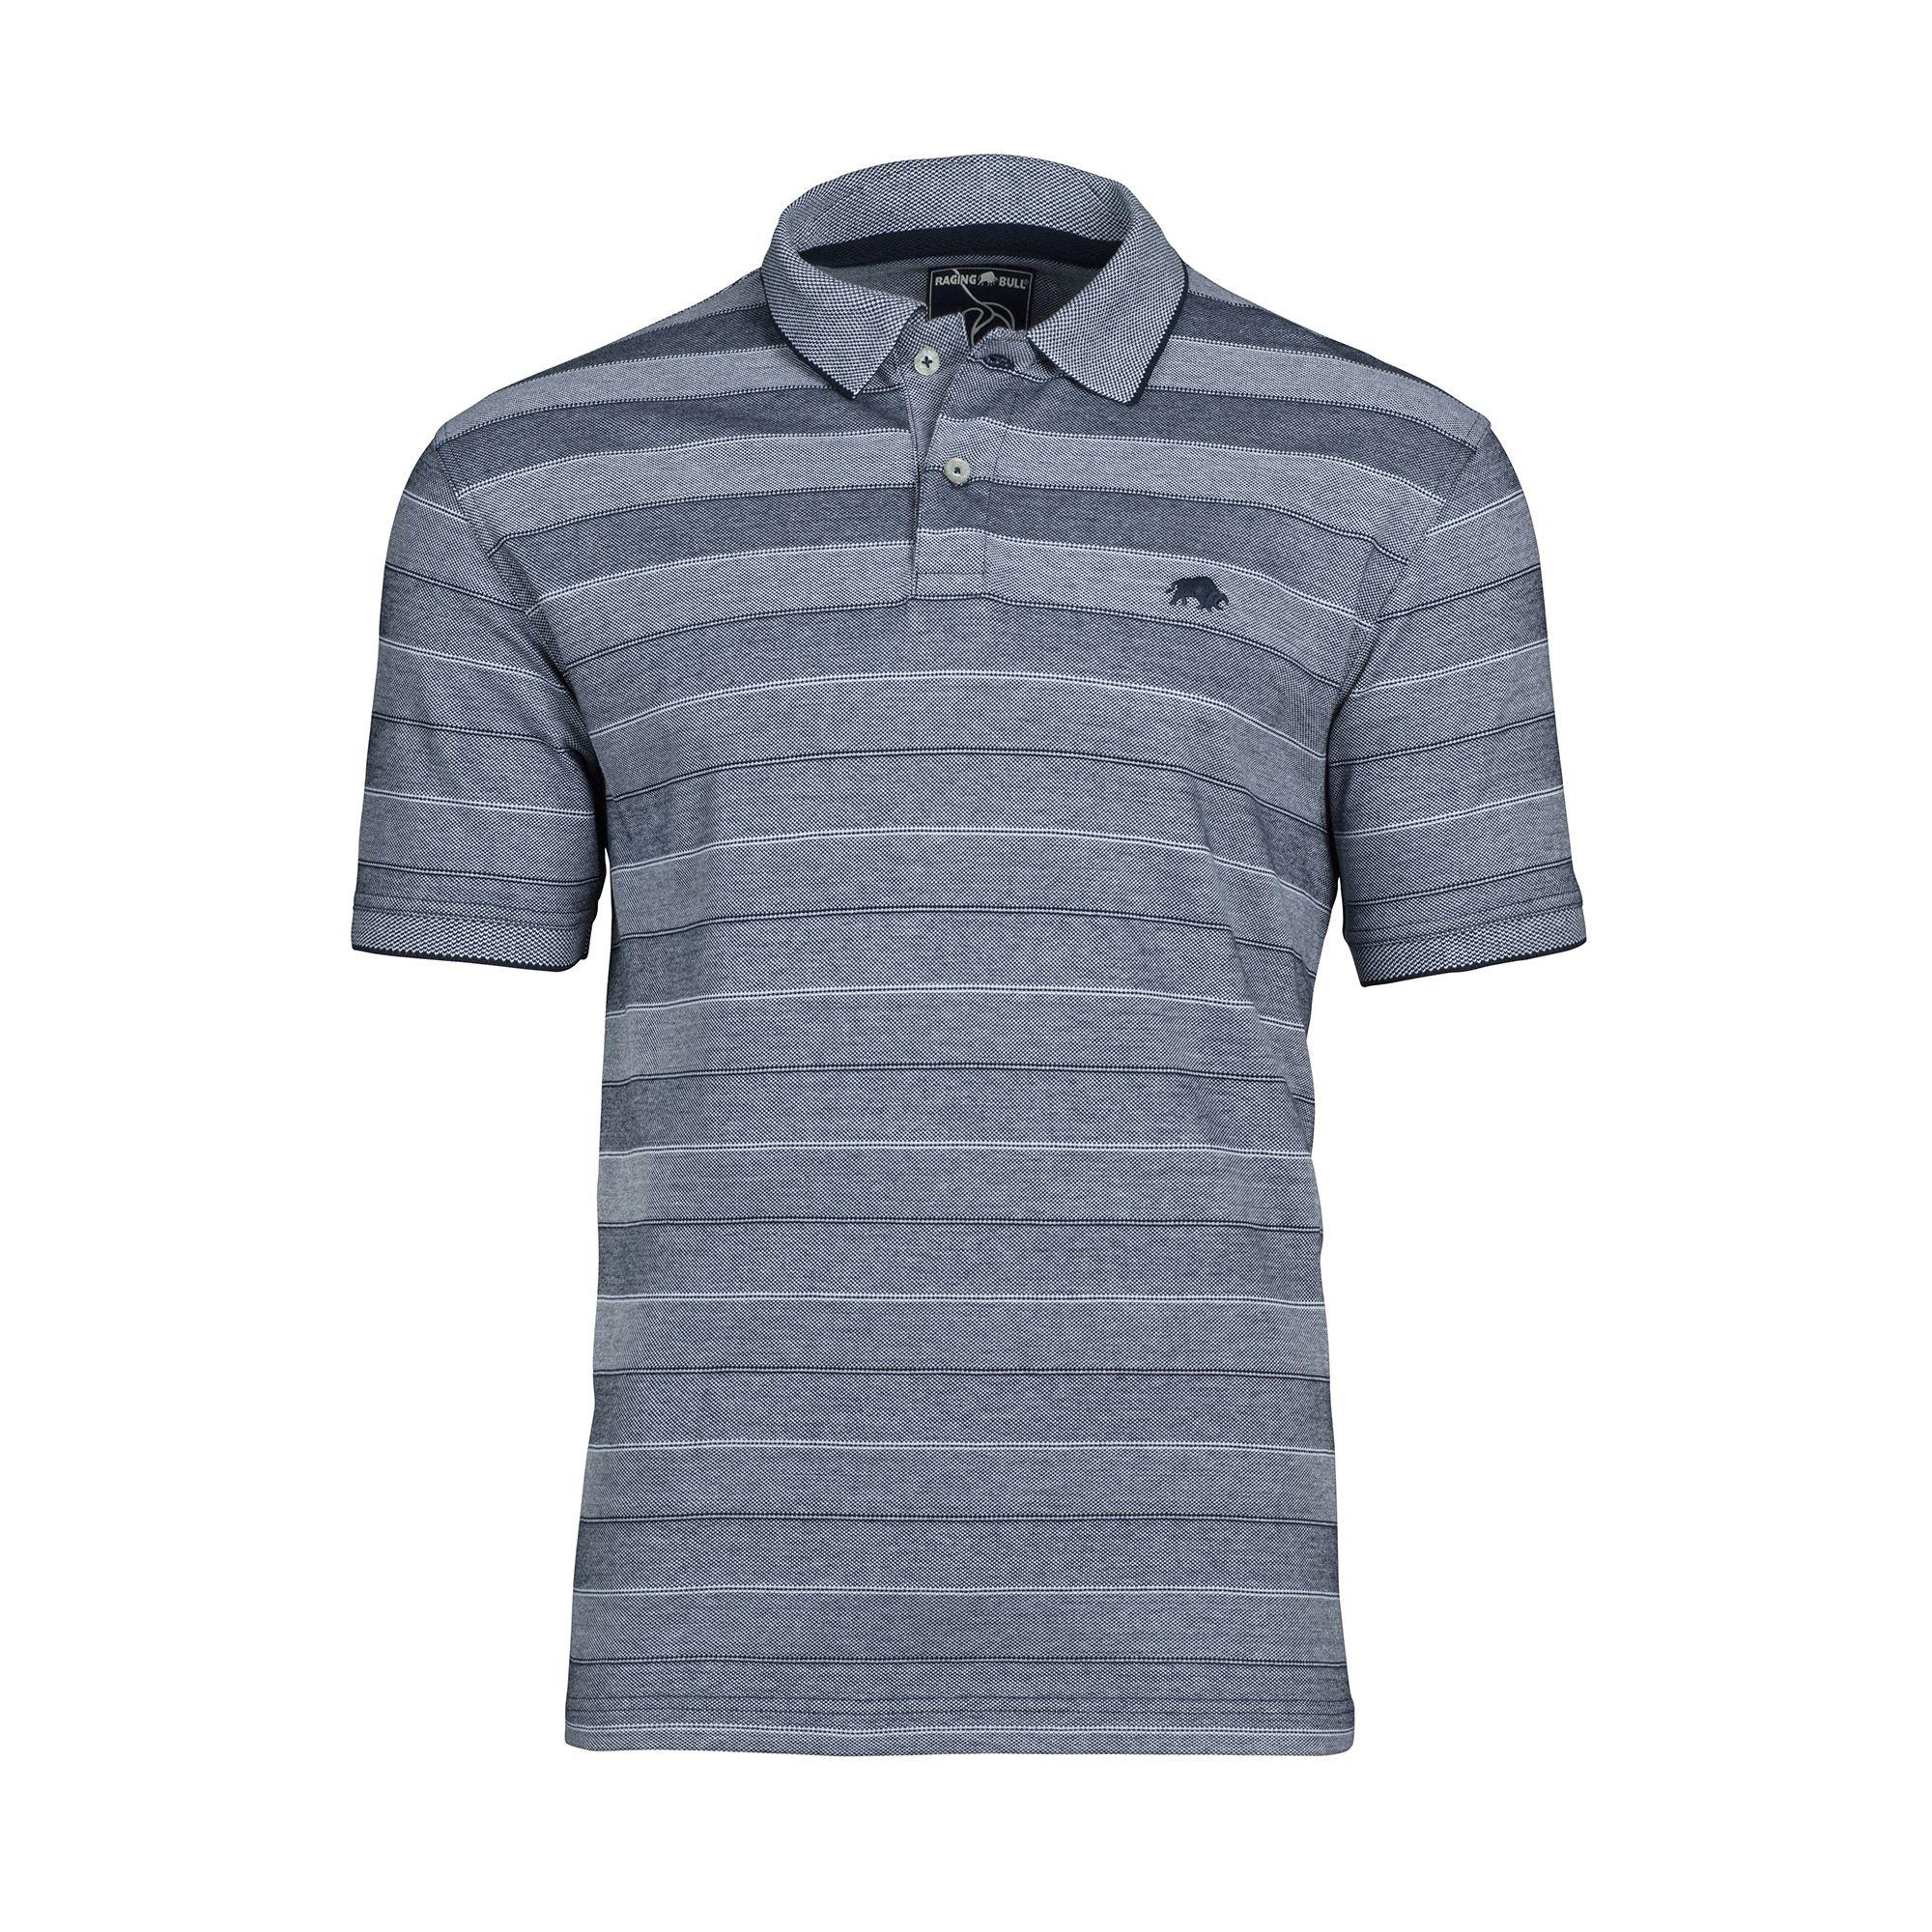 d2608ed3 Raging Bull Navy Birdseye Stripe Polo Shirt in Blue for Men - Lyst